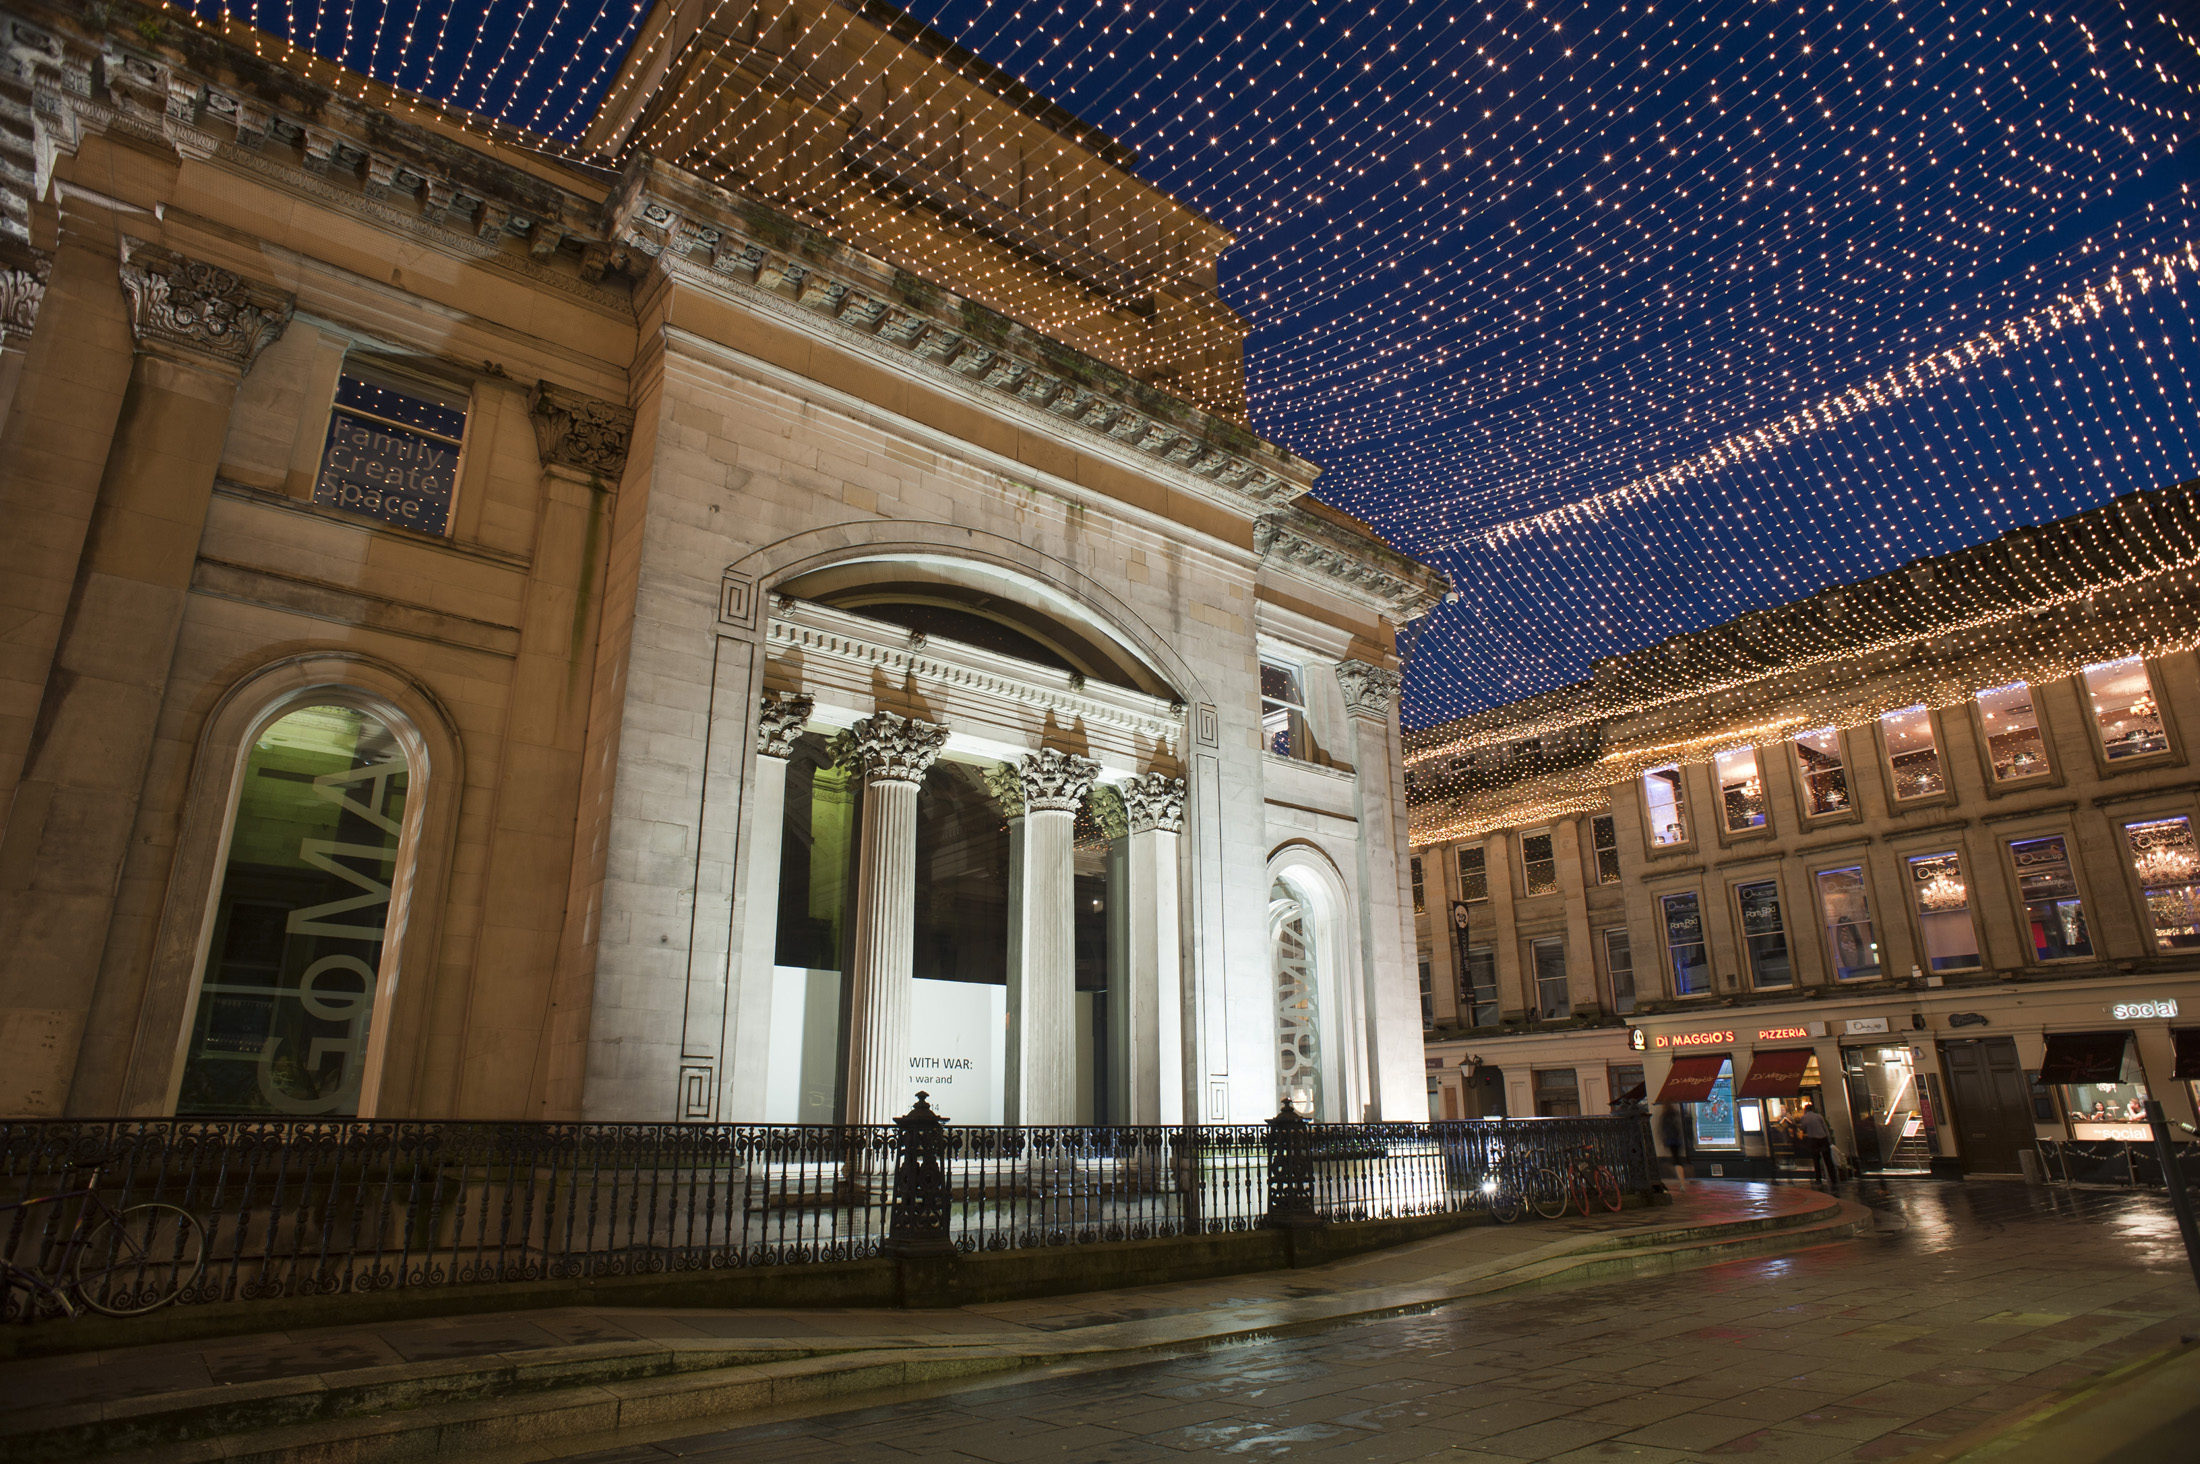 Royal Exchange Square and the GOMA, or Gallery of Modern Art, building in Glasgow illuminated at night with a display of overhead Christmas lights